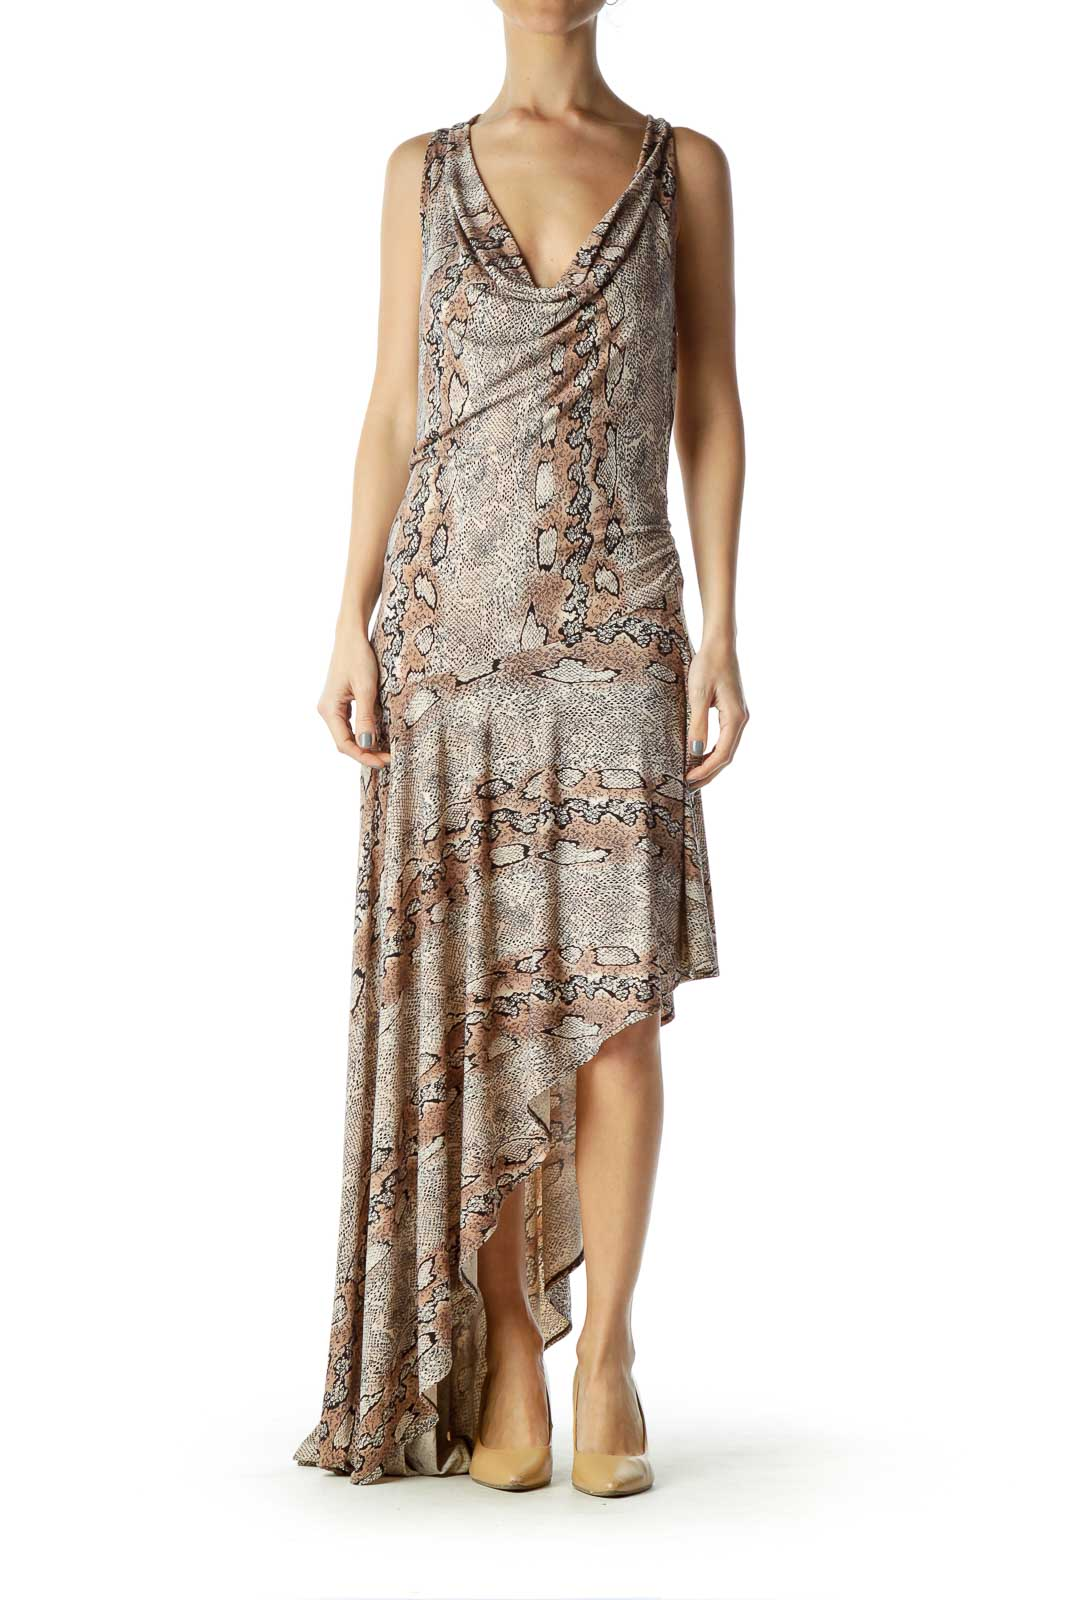 Beige Animal Print Asymmetric Maxi Dress Front